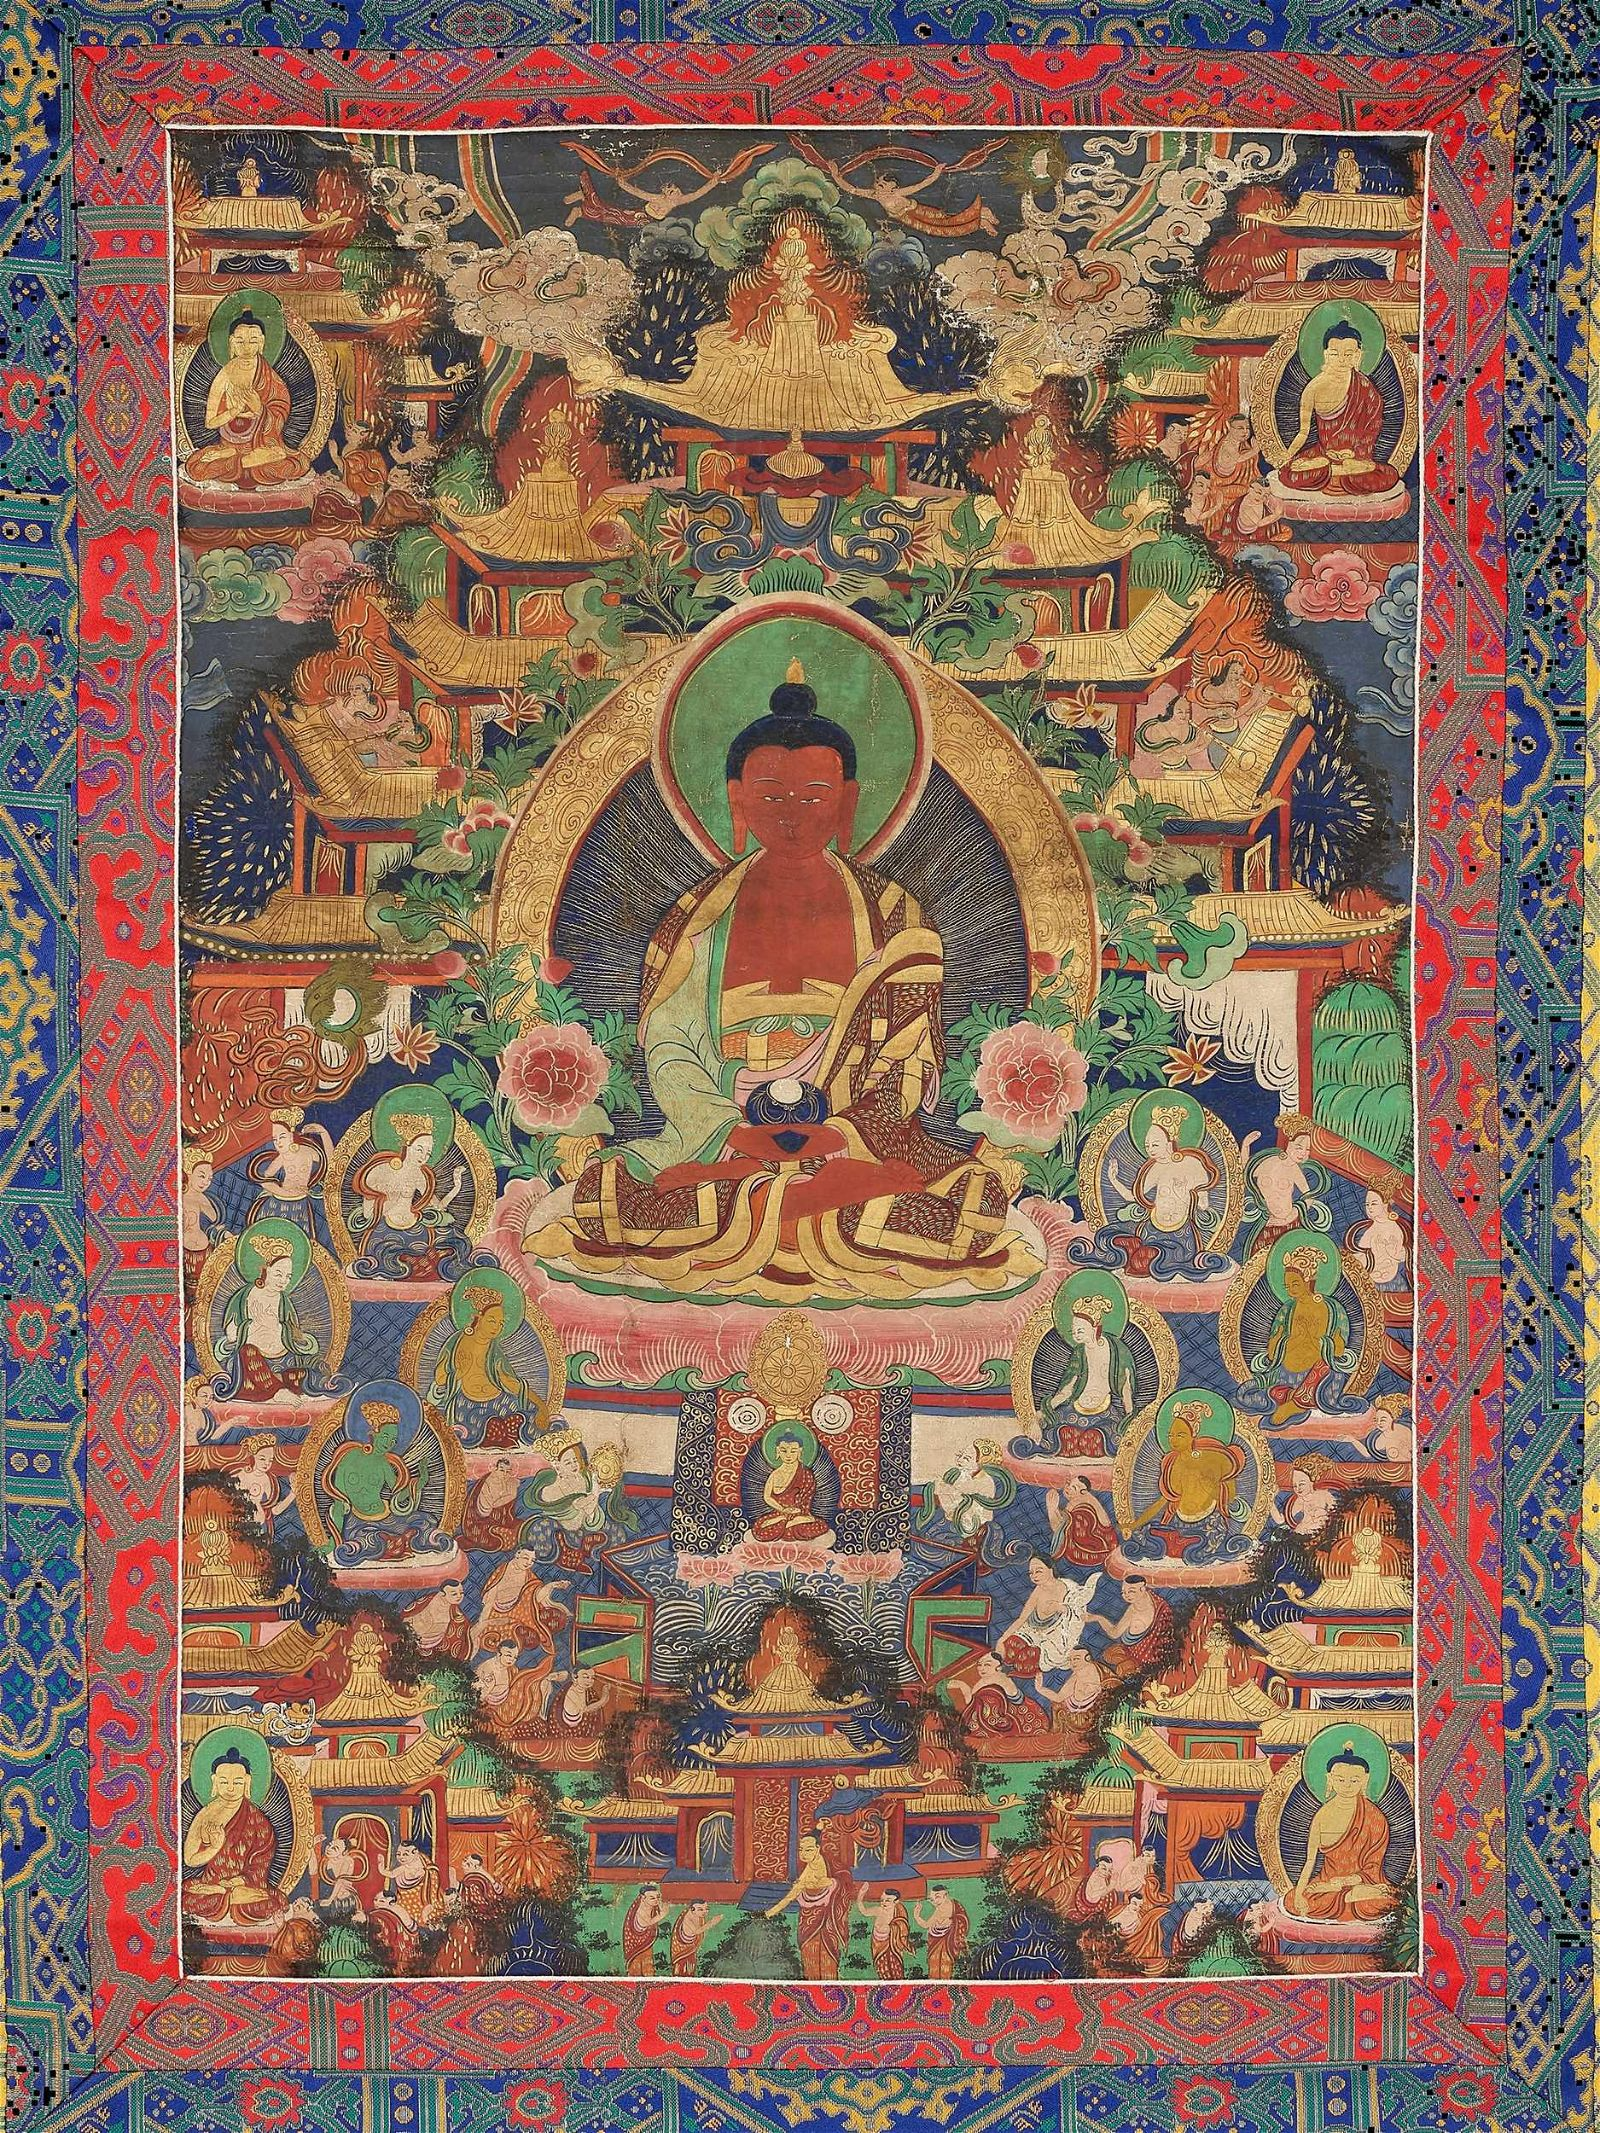 A TIBETAN THANGKA DEPICTING BUDDHA AMITABHA, C. 1900